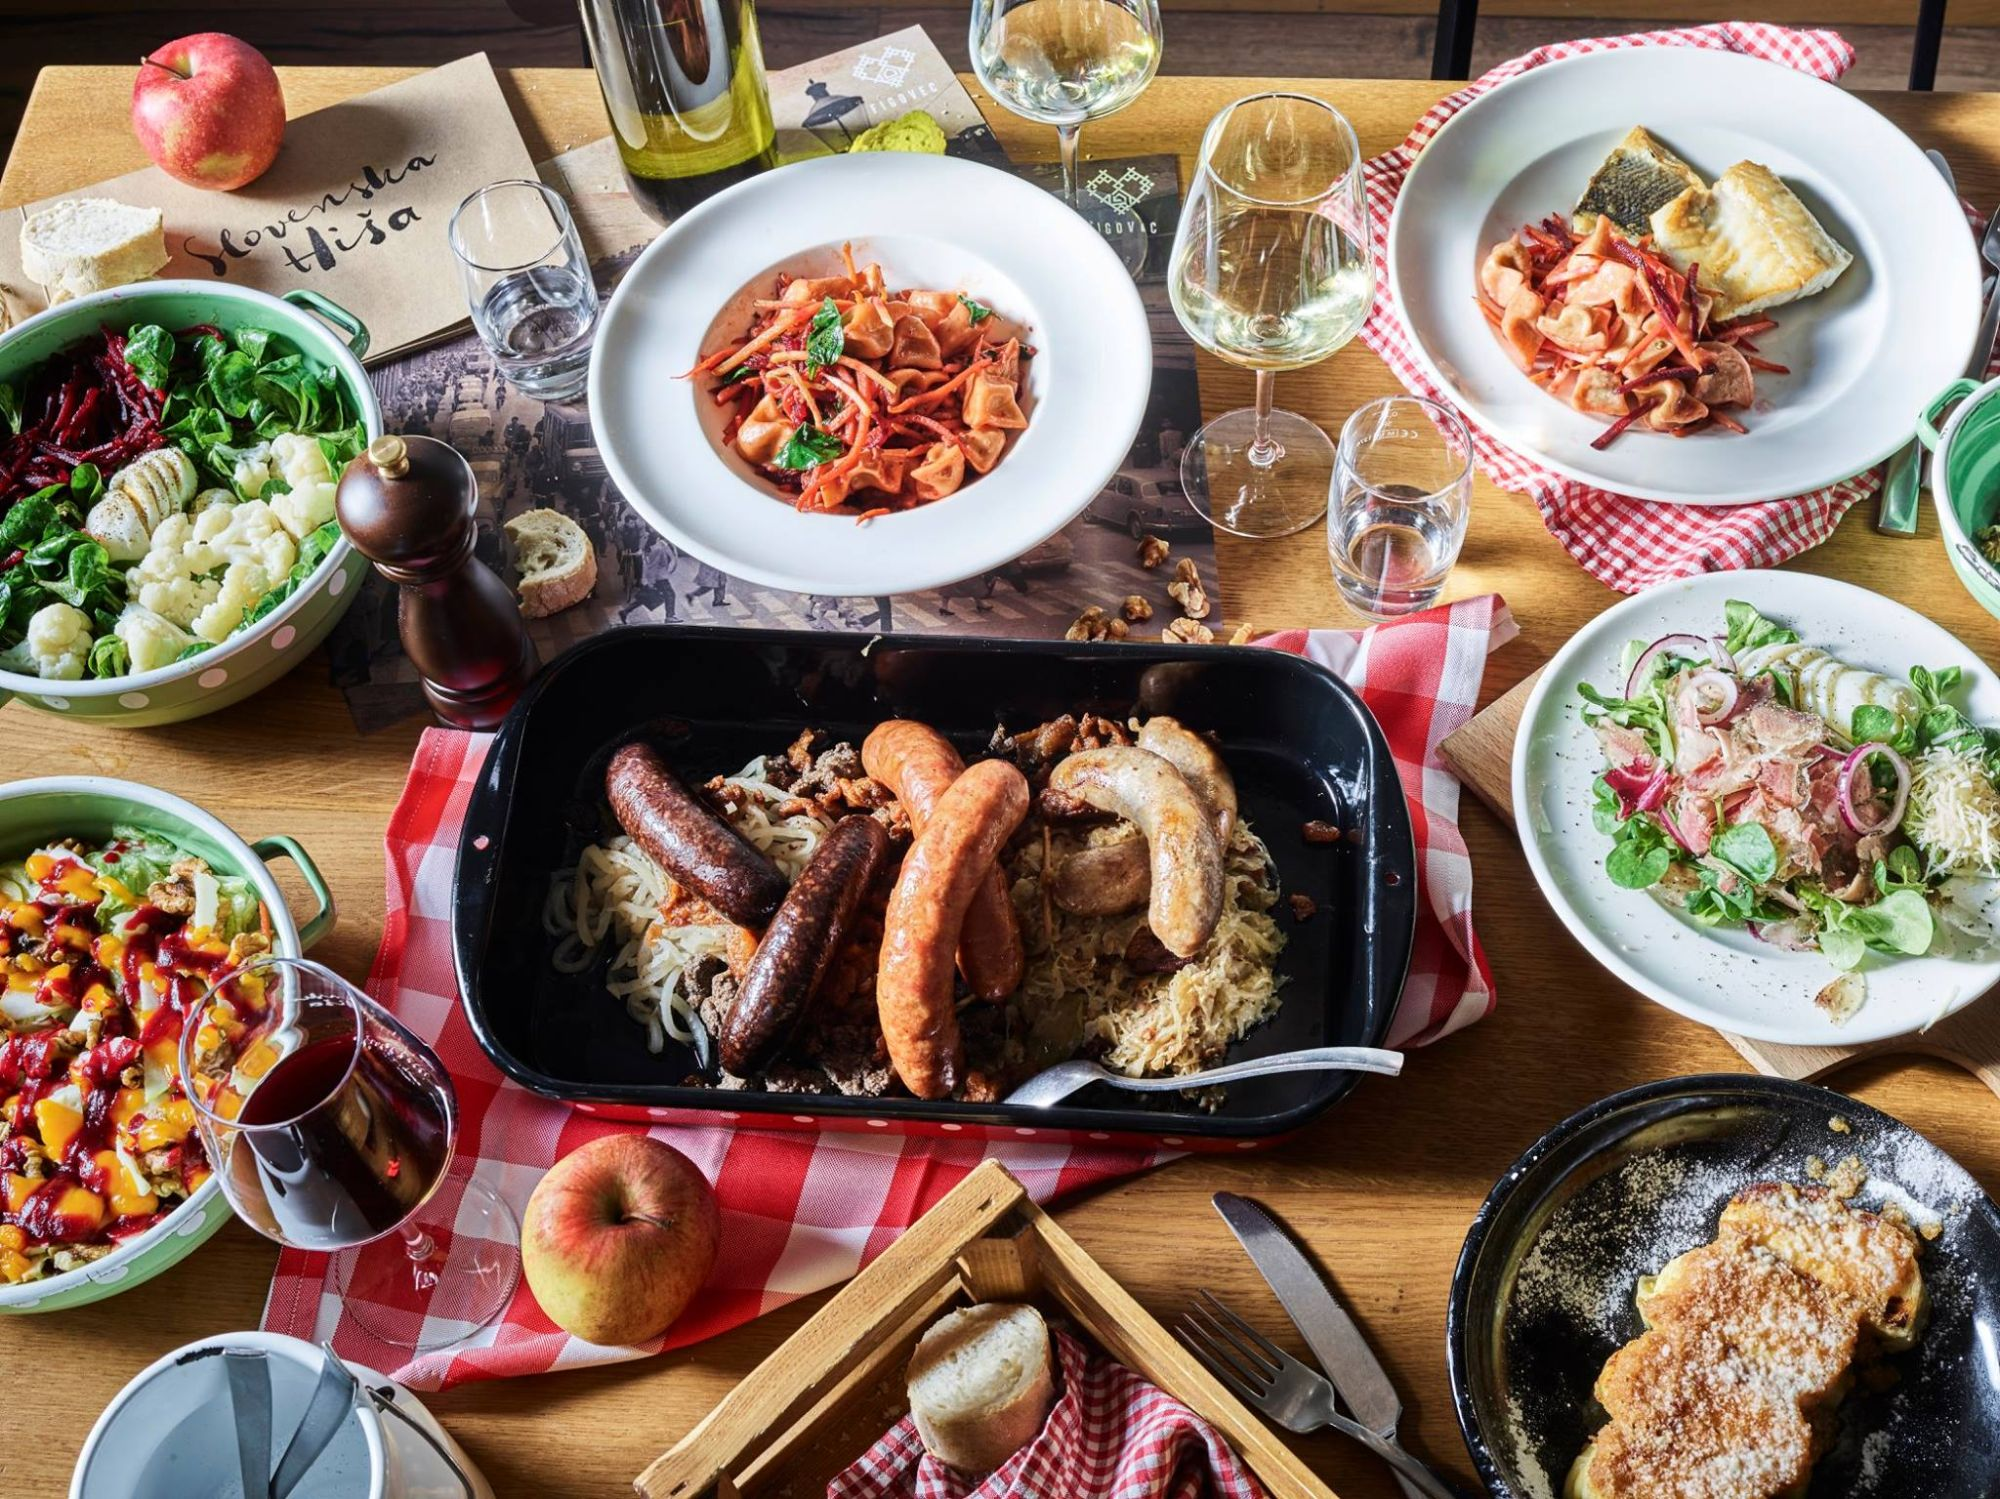 Table with various food dishes and glasses filled with wine